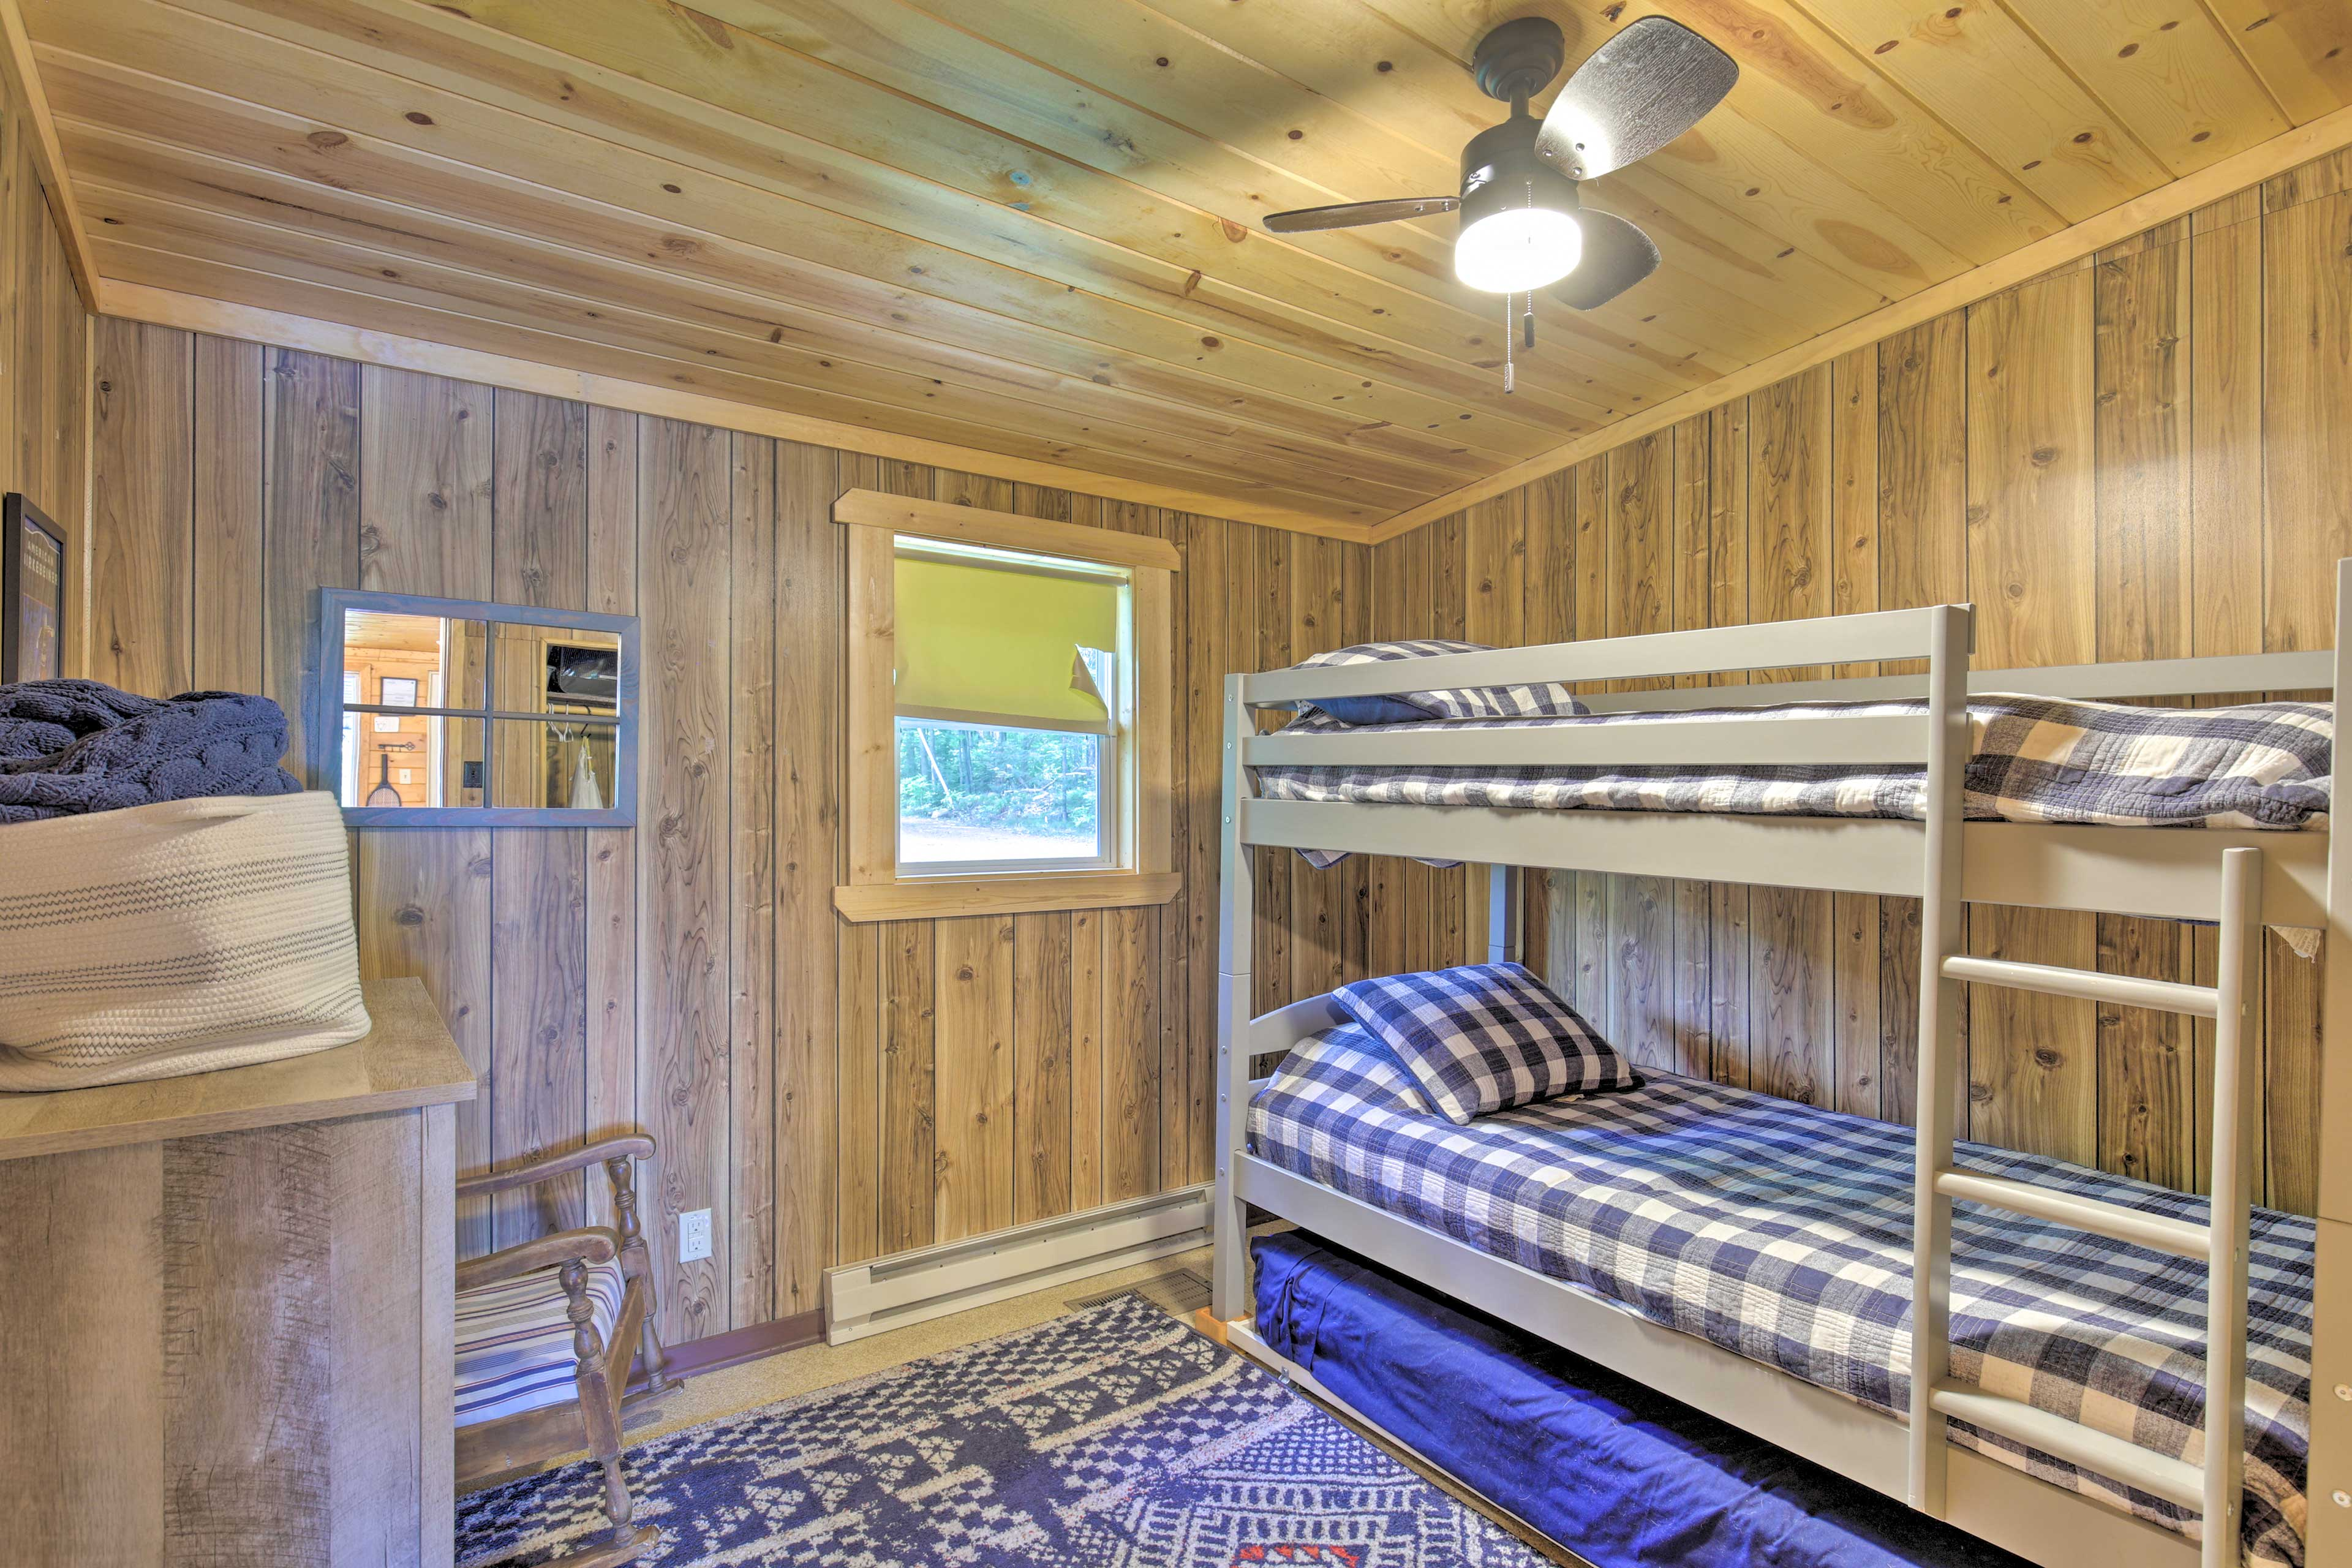 The kids will love bunking together in this room.